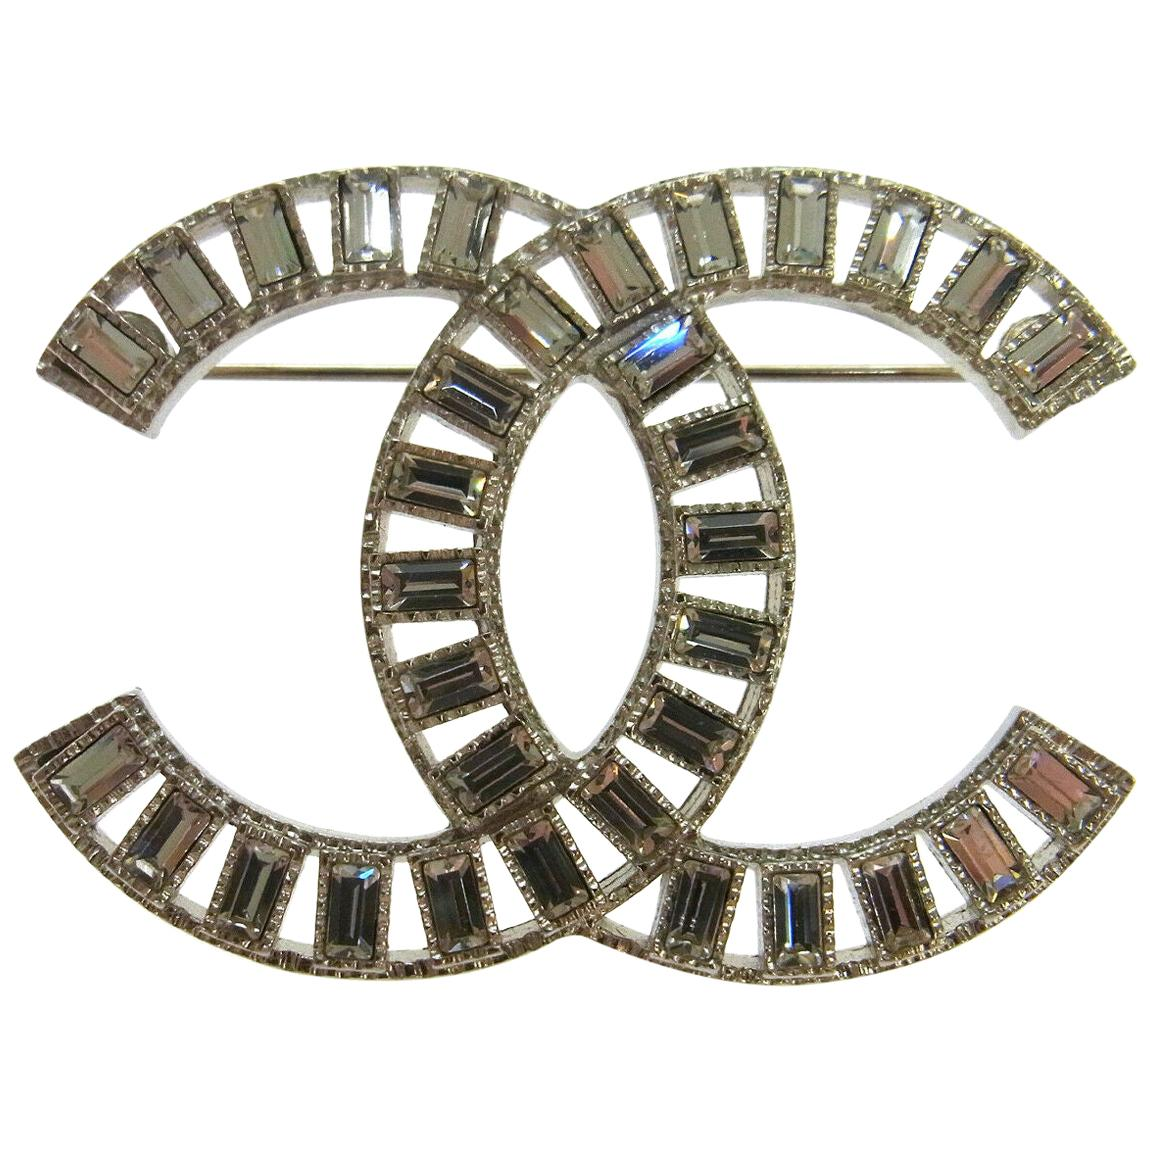 e7d9a47b832 Vintage Chanel Brooches - 286 For Sale at 1stdibs